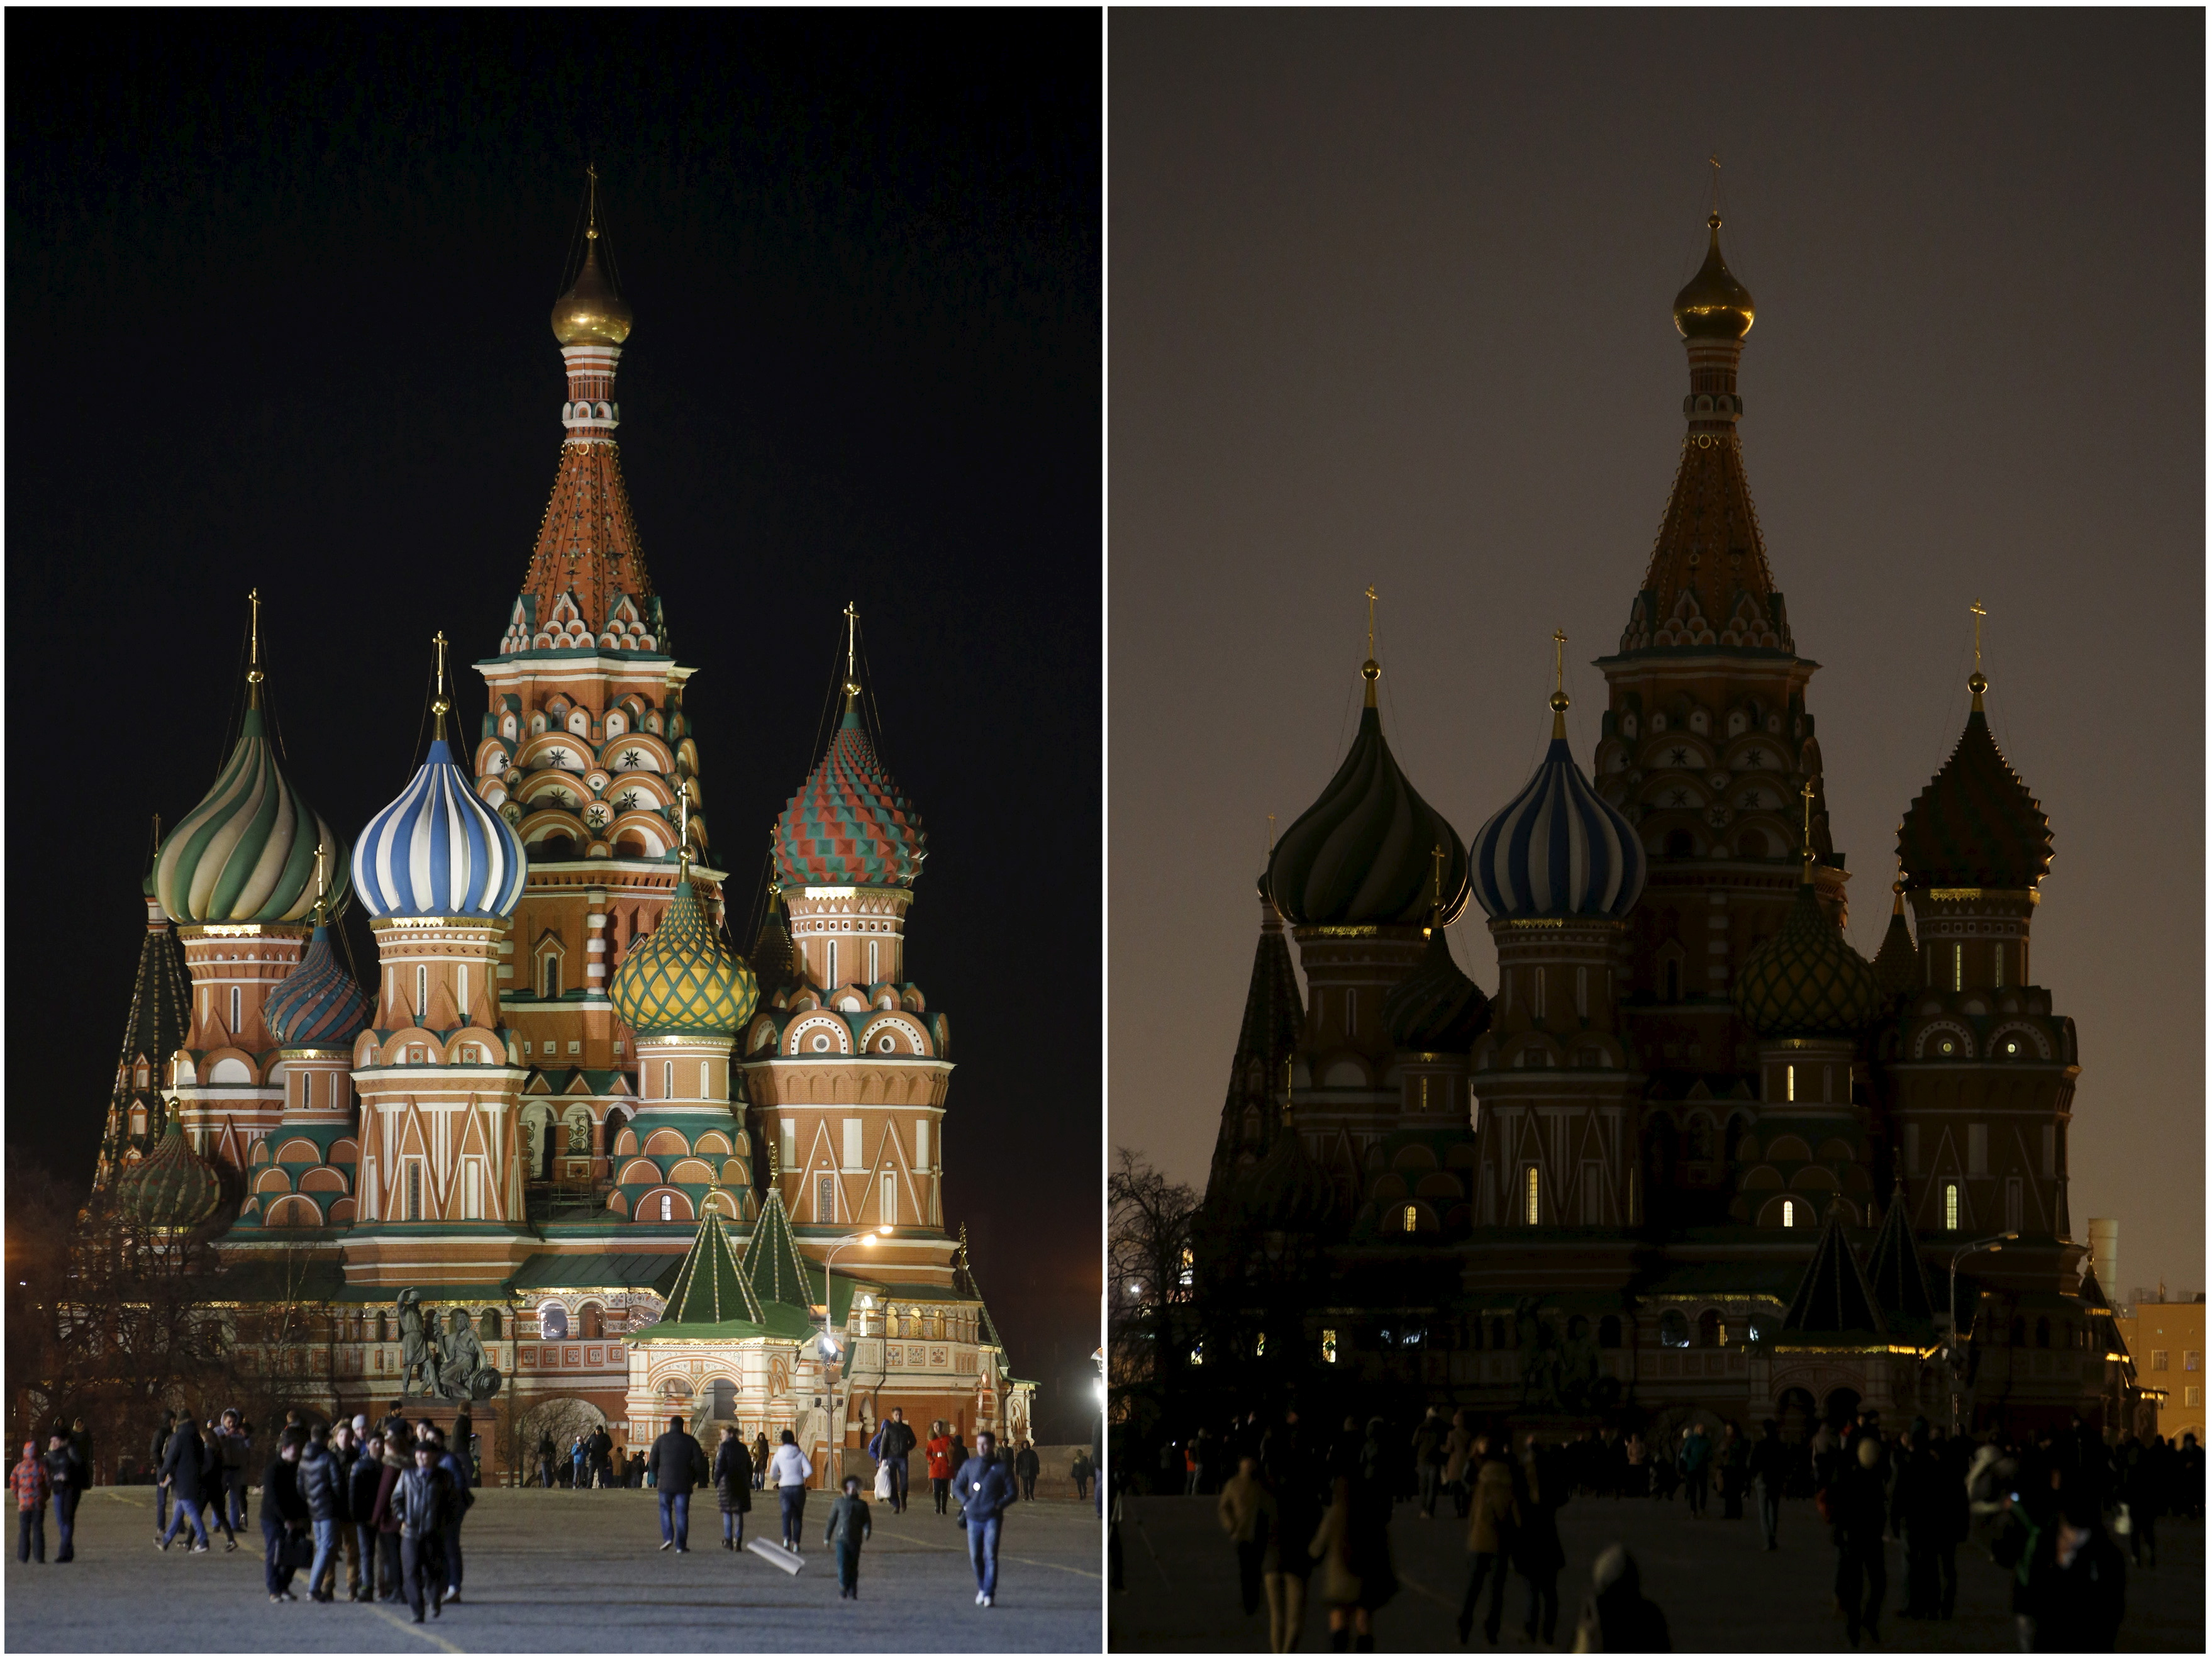 A combination picture shows St. Basil's Cathedral before (L) and during Earth Hour in Moscow March 28, 2015. Earth Hour, when everyone around the world is asked to turn off lights for an hour from 8.30 p.m. local time, is meant as a show of support for tougher action to confront climate change. REUTERS/Sergei Karpukhin